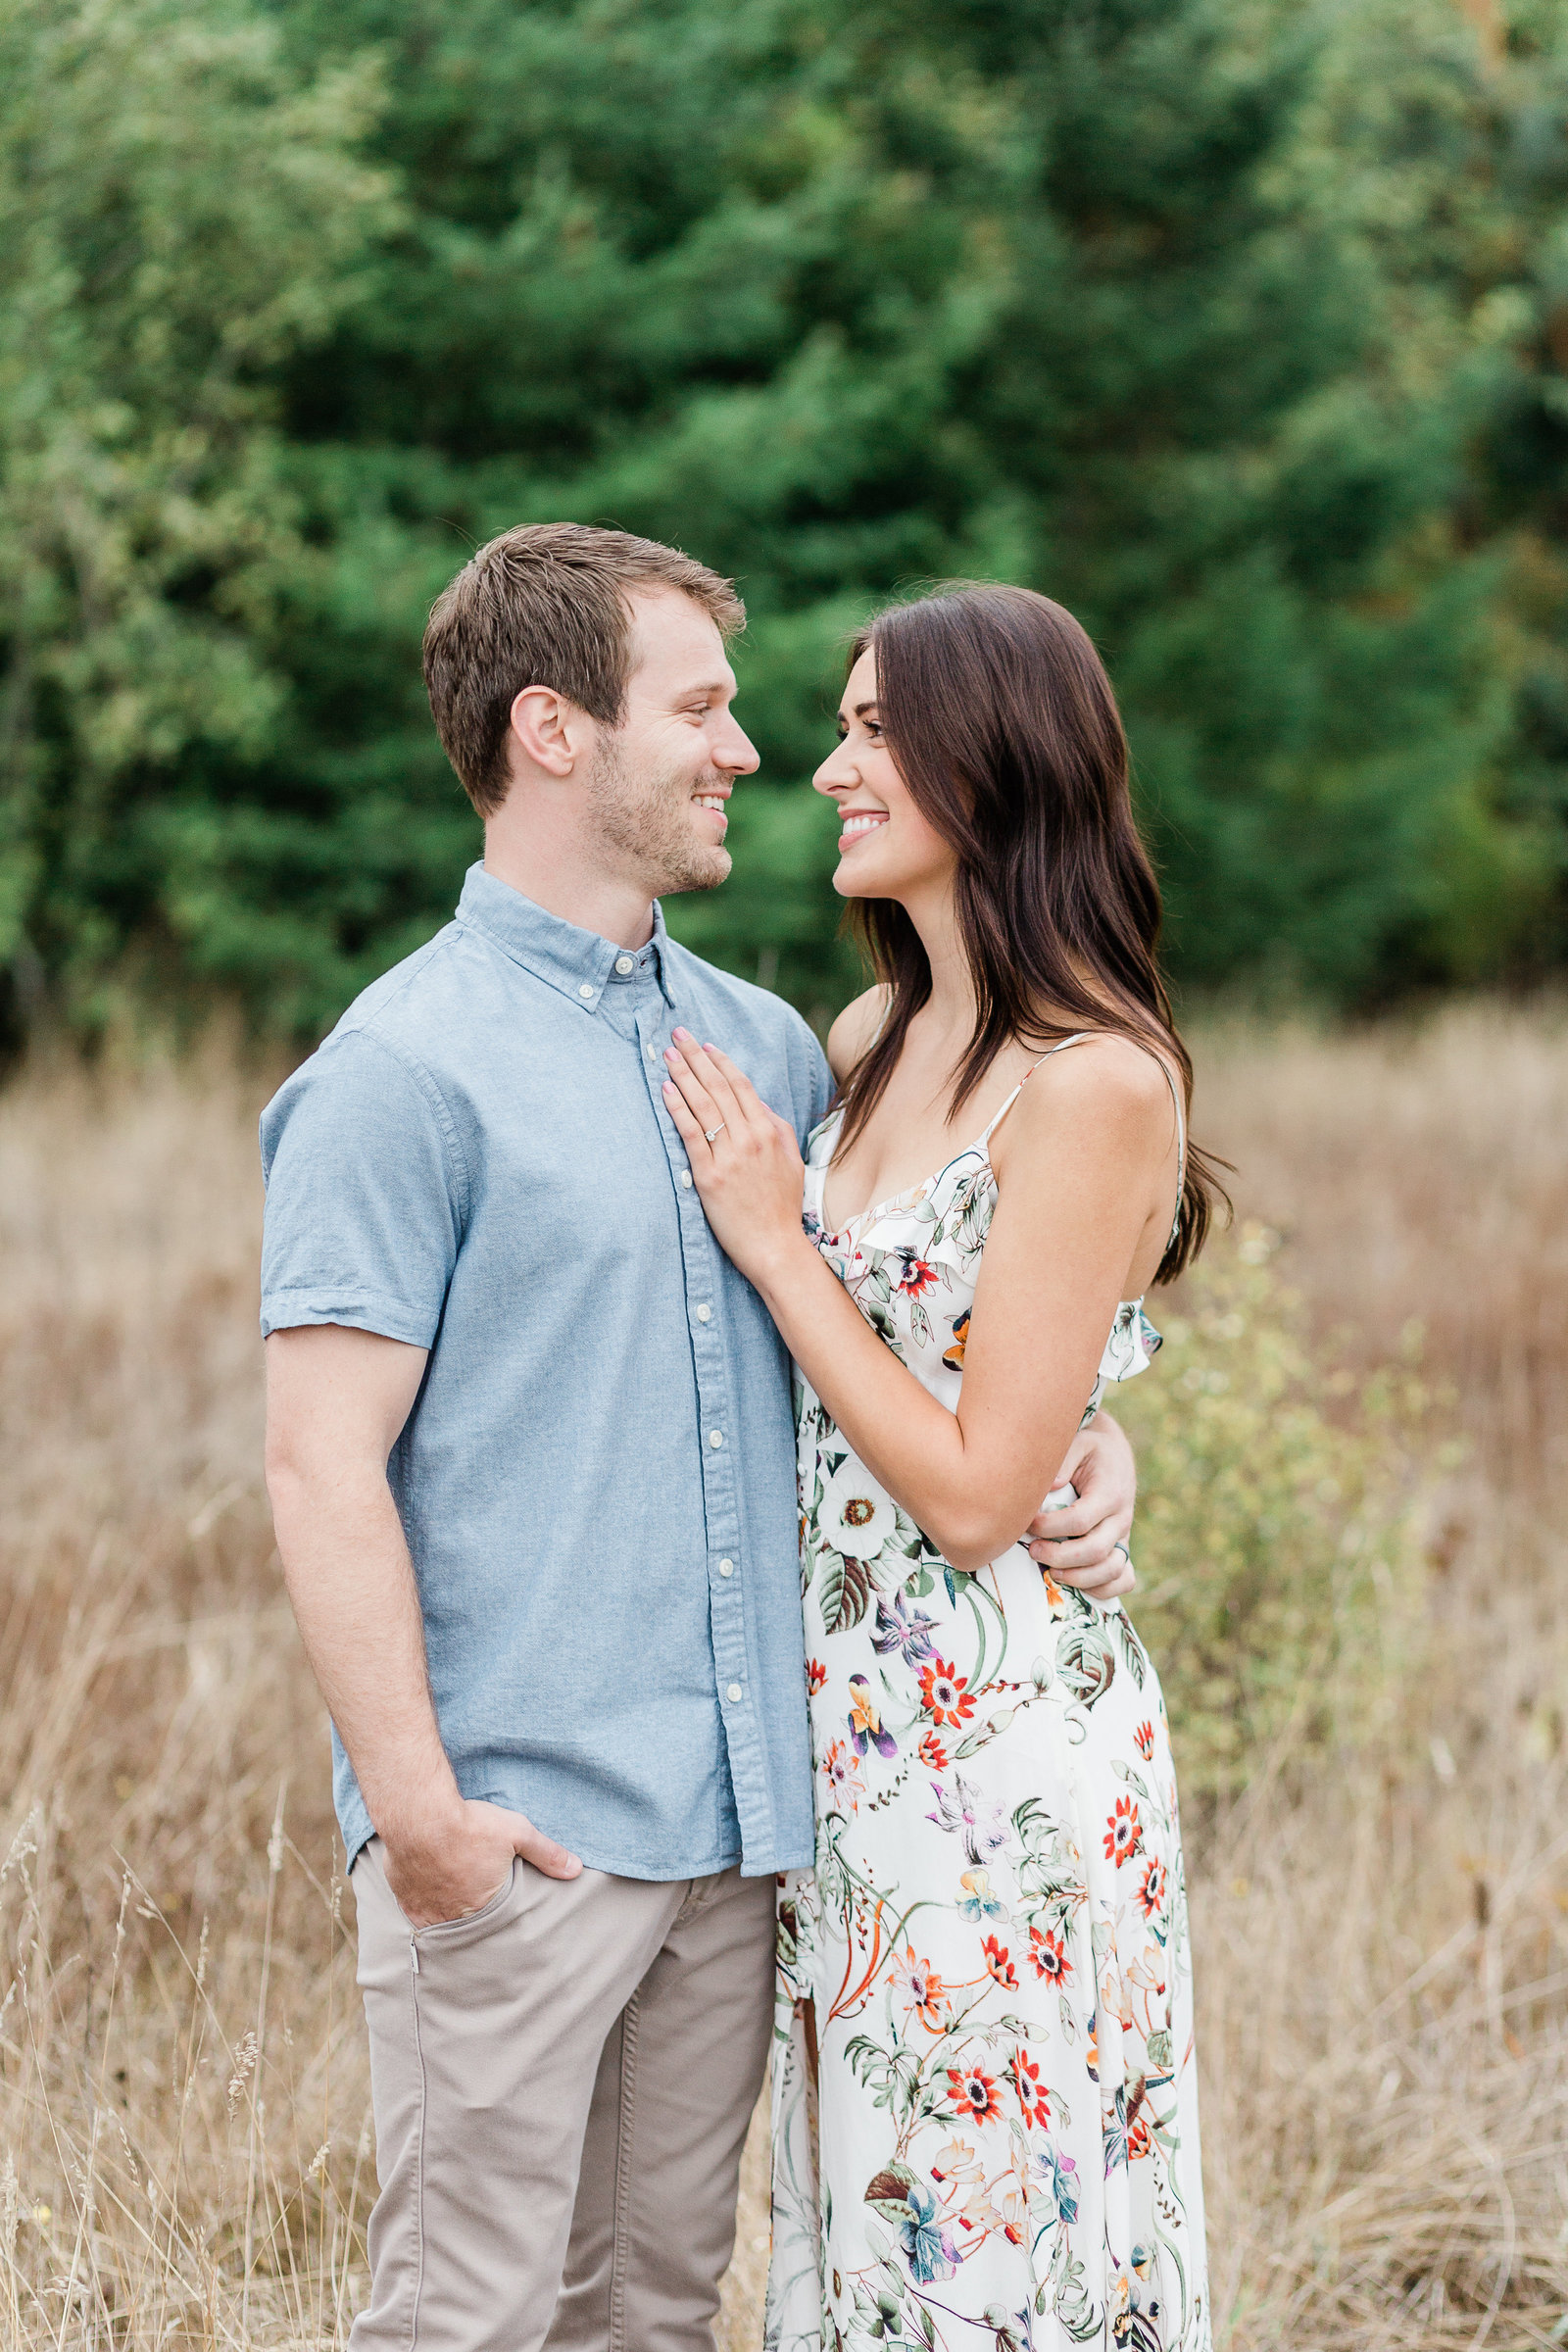 Taylor-TJ-Engagements-Georgia-Ruth-Photography-35